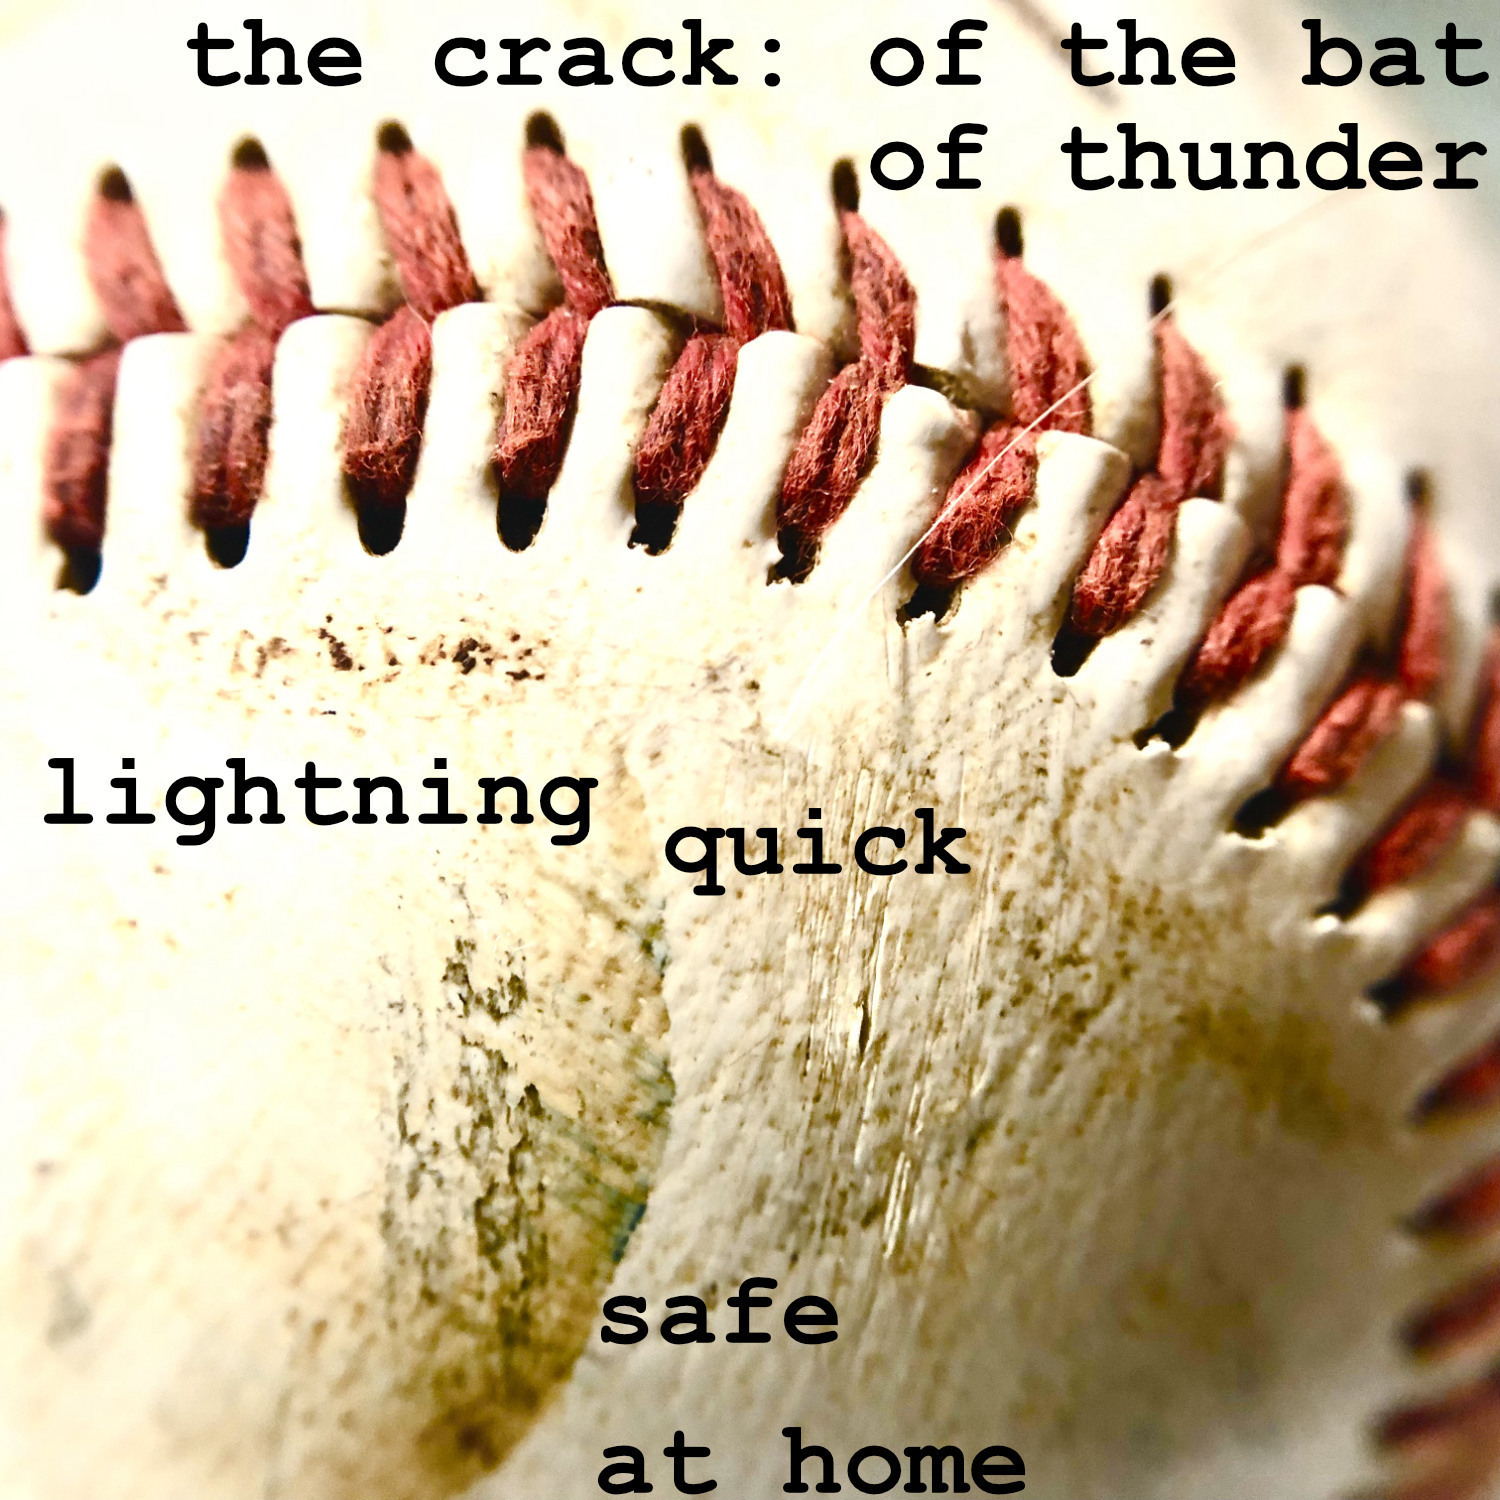 the crack: of the bat of thunder lightning quick safe at home